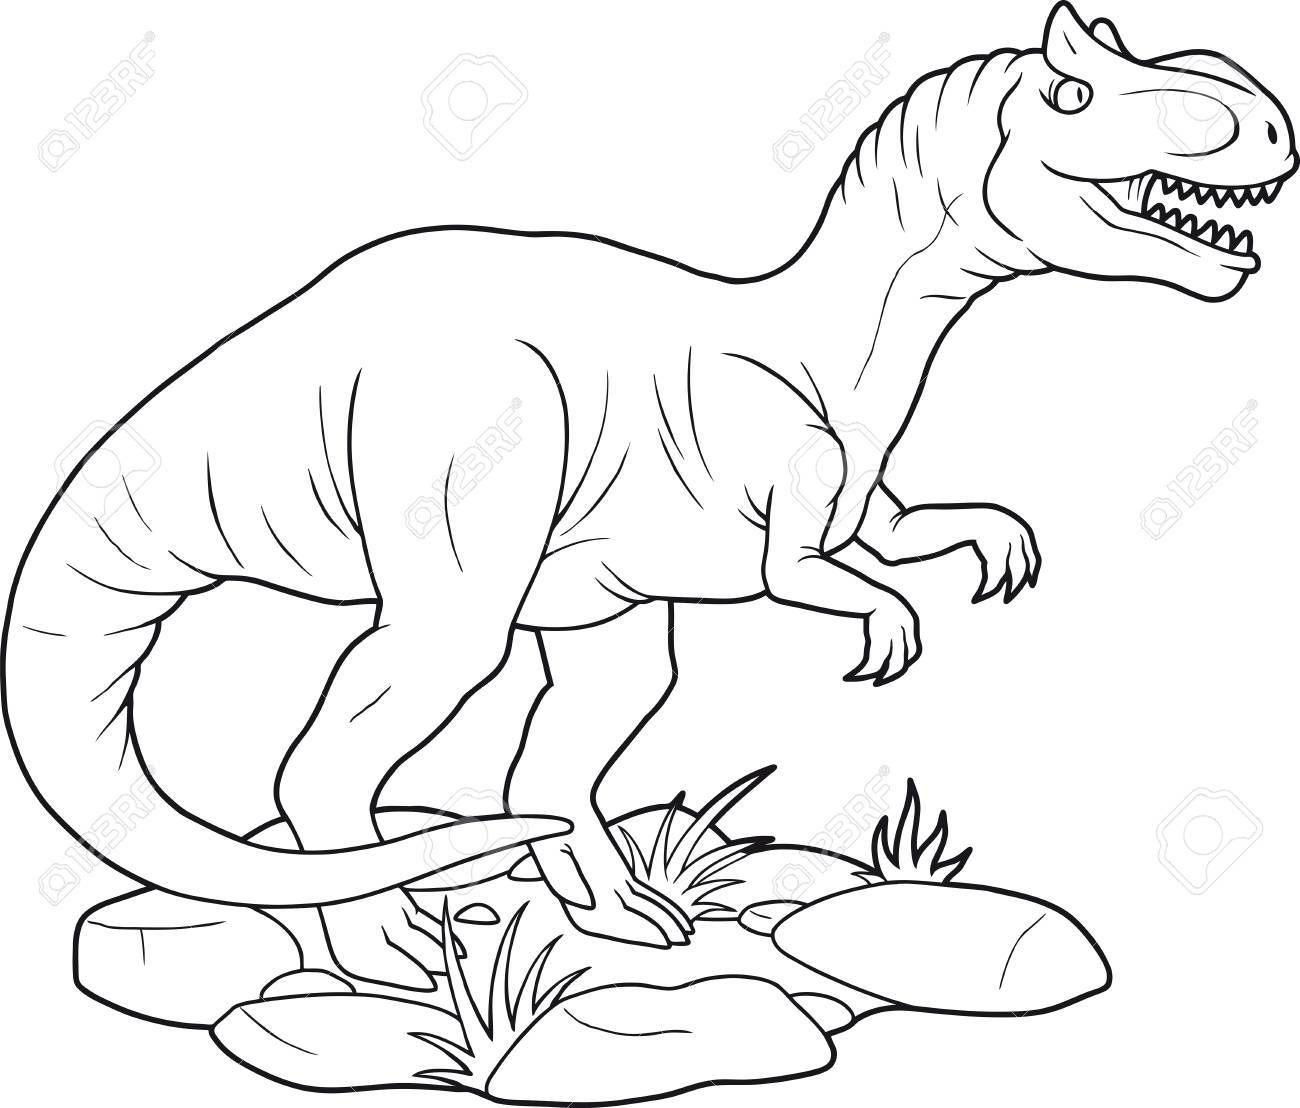 Allosaurus Drawing At Getdrawings Com Free For Personal Use